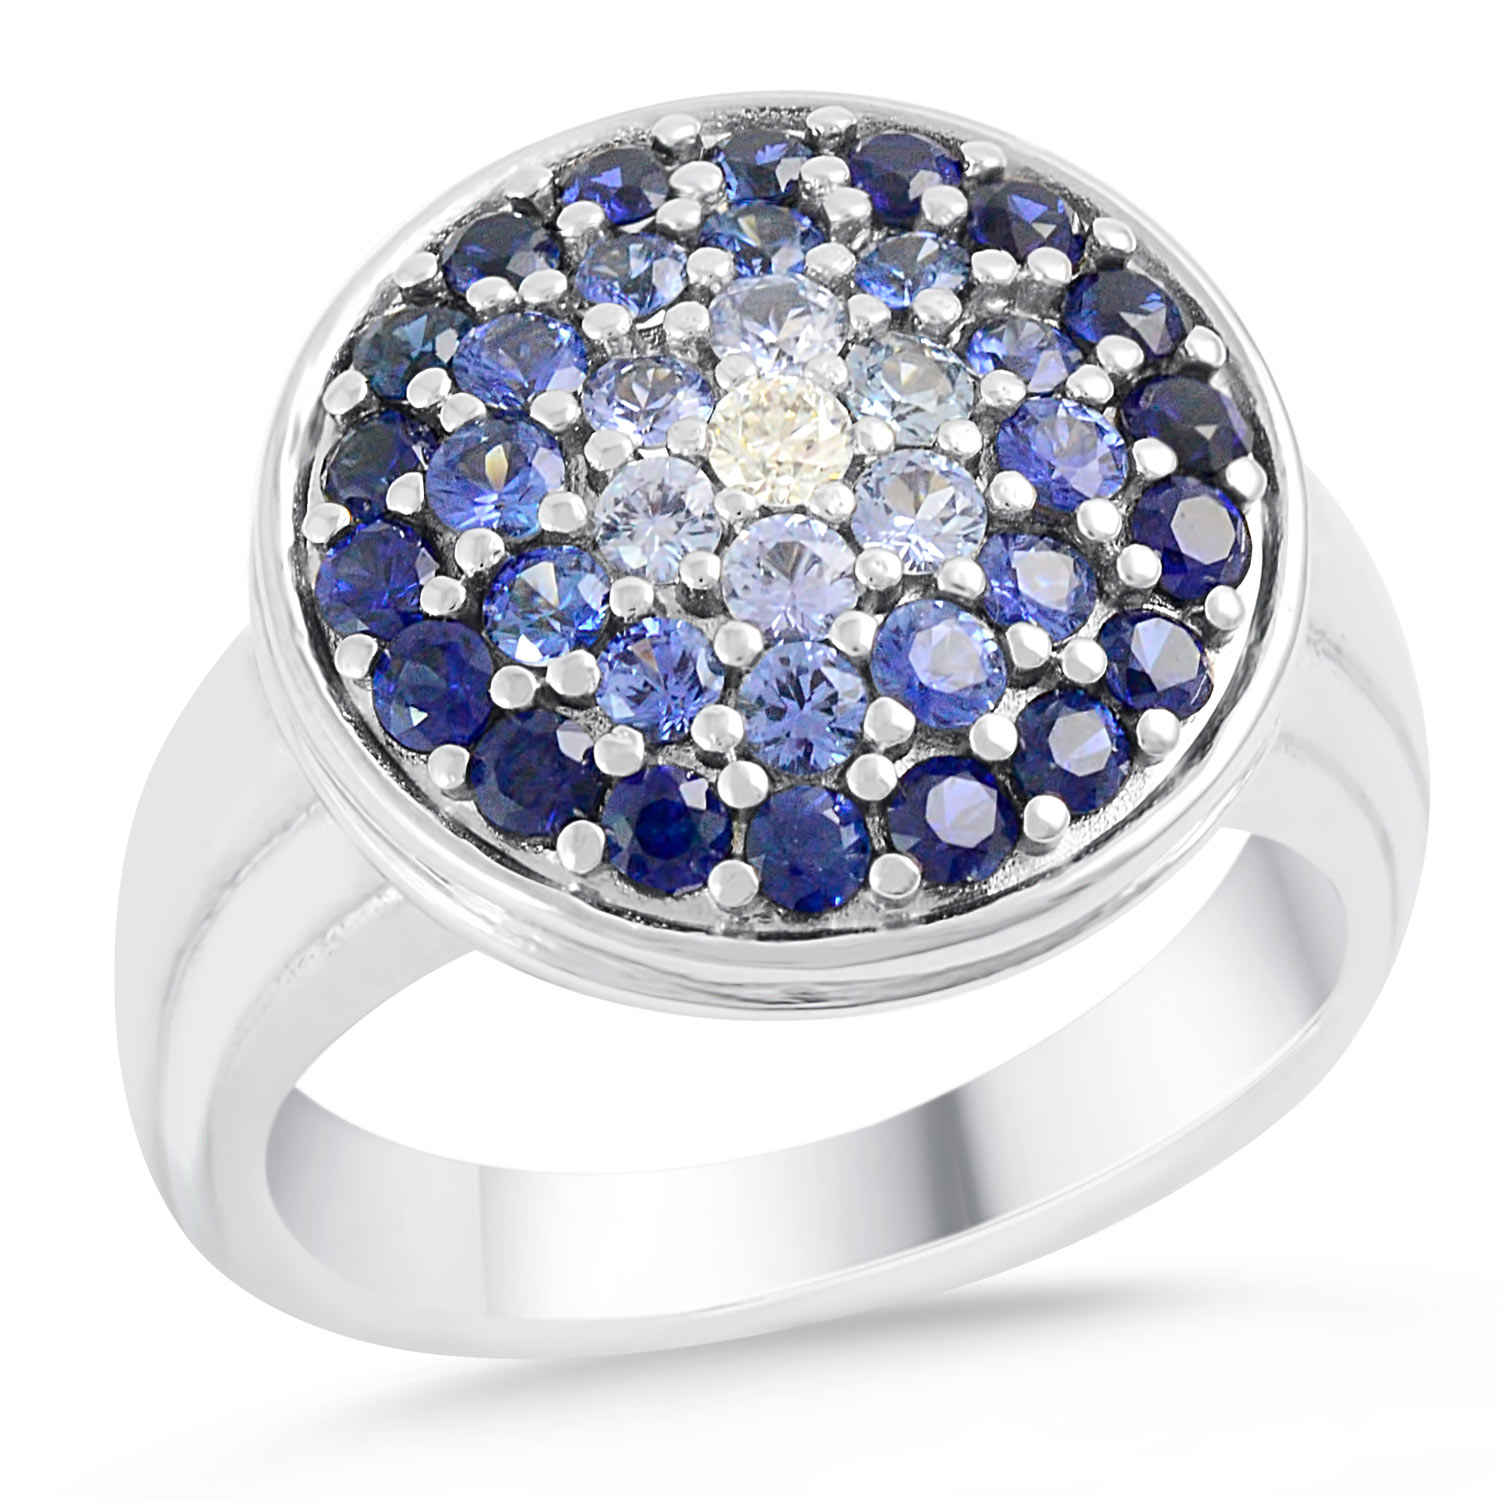 Ombre-Blue-Sapphire-Ring.jpg